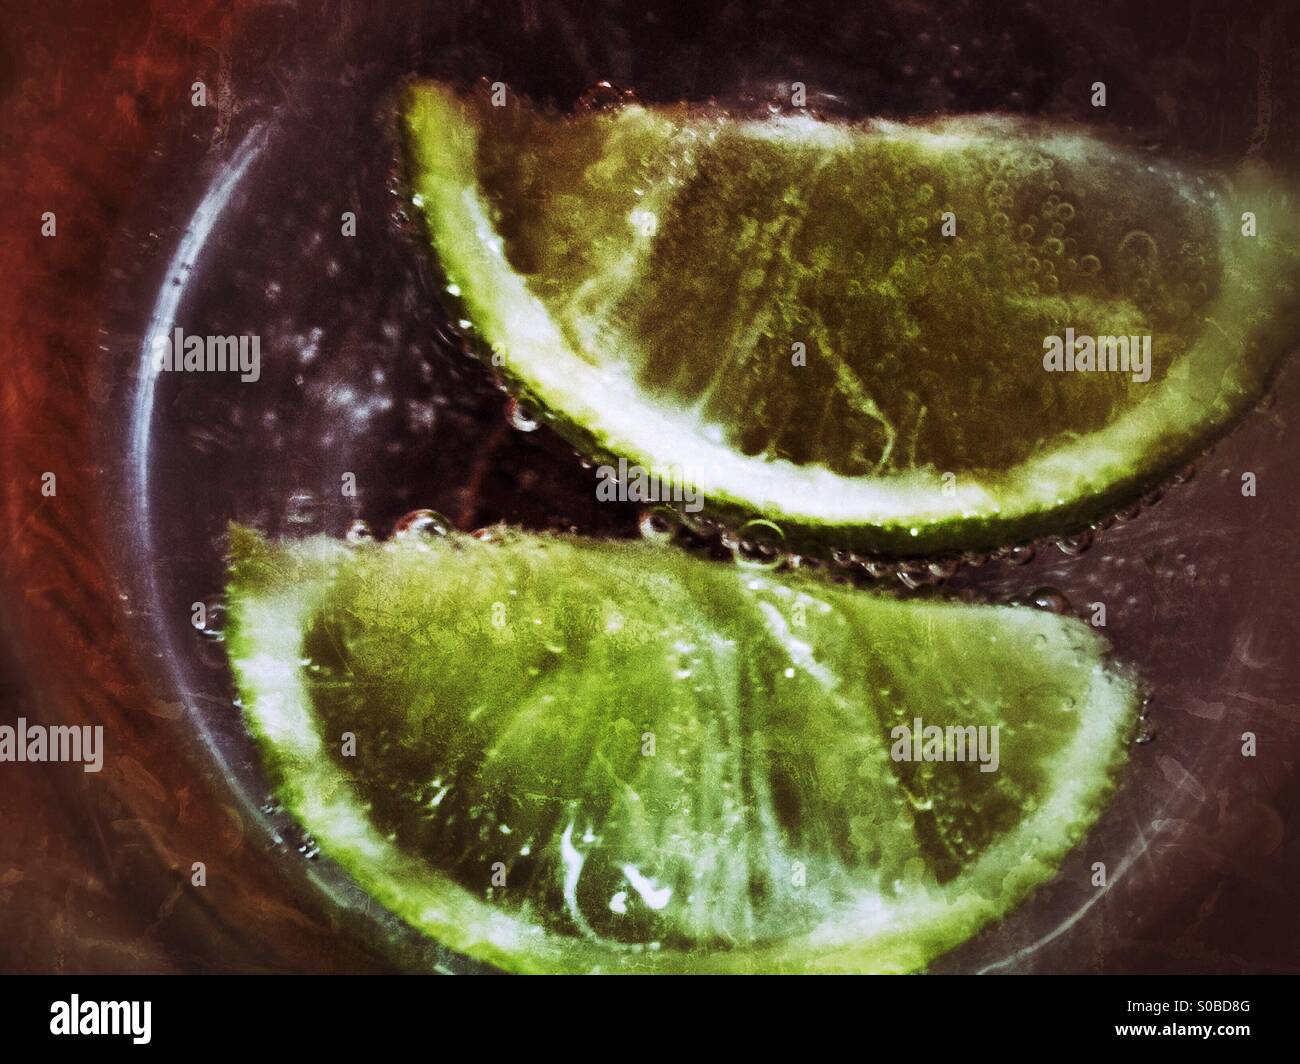 Lime slices in a glass - Stock Image